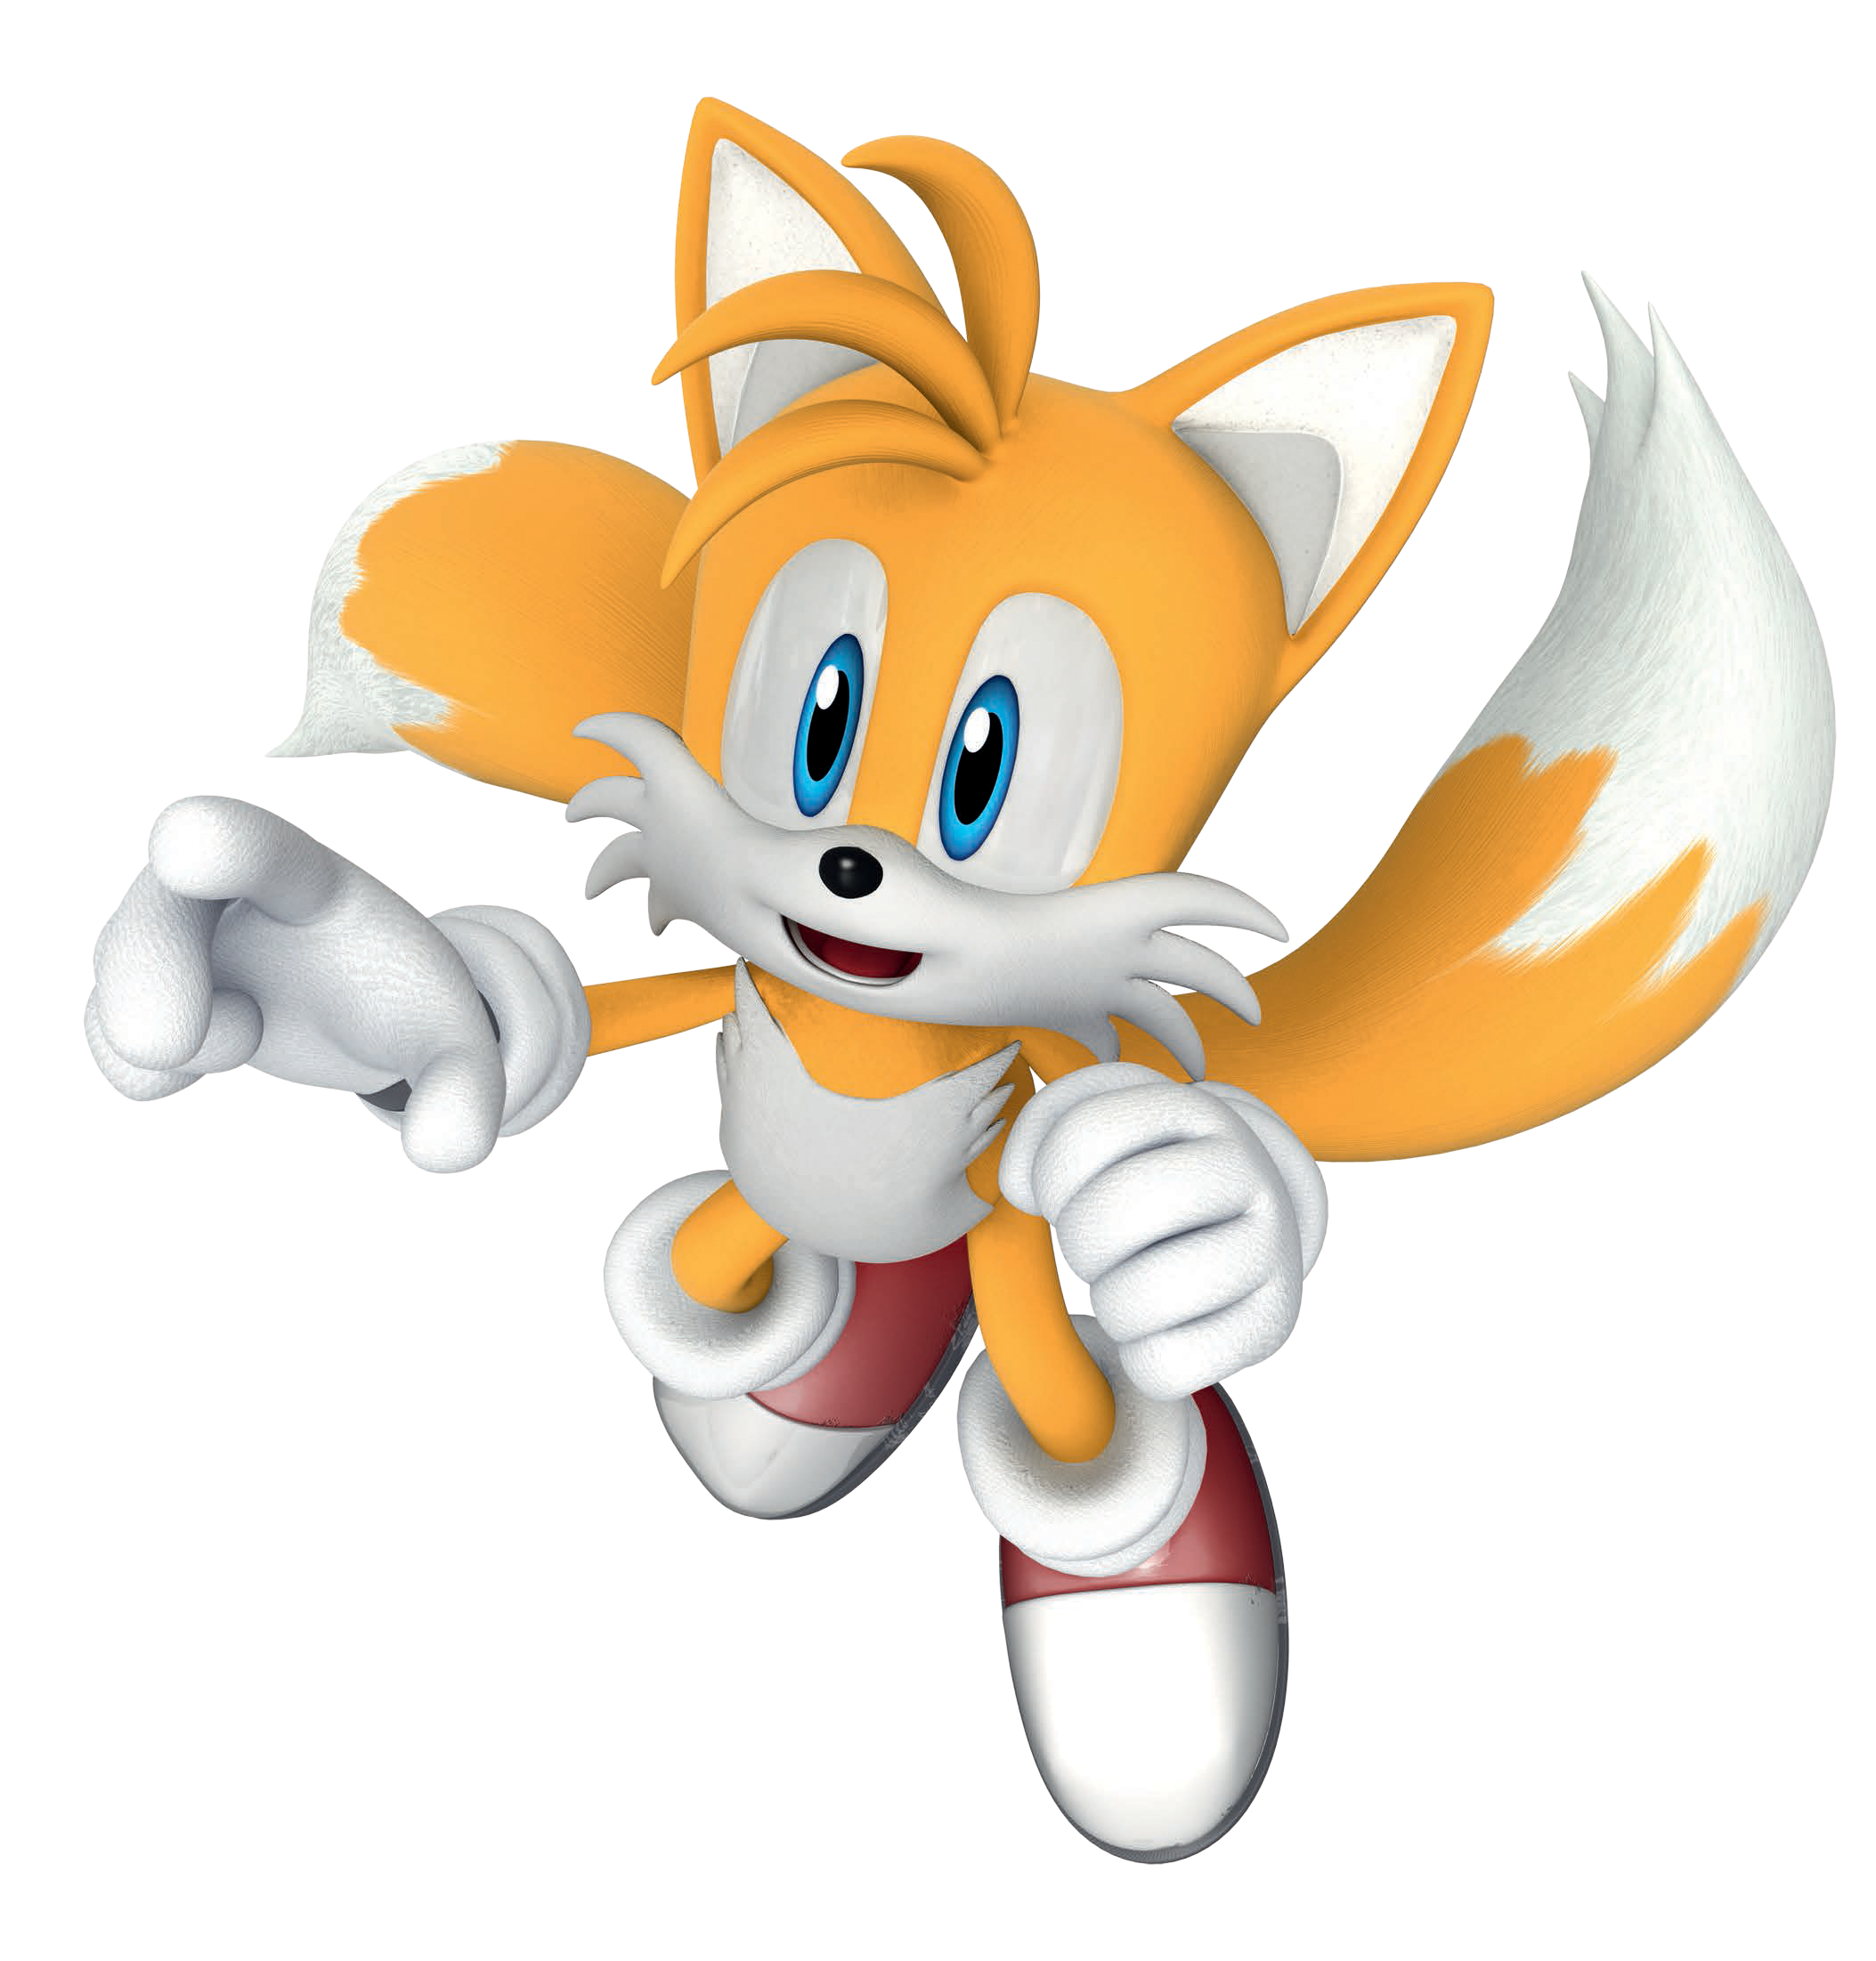 File:Tails Sonic Channel 2013.png